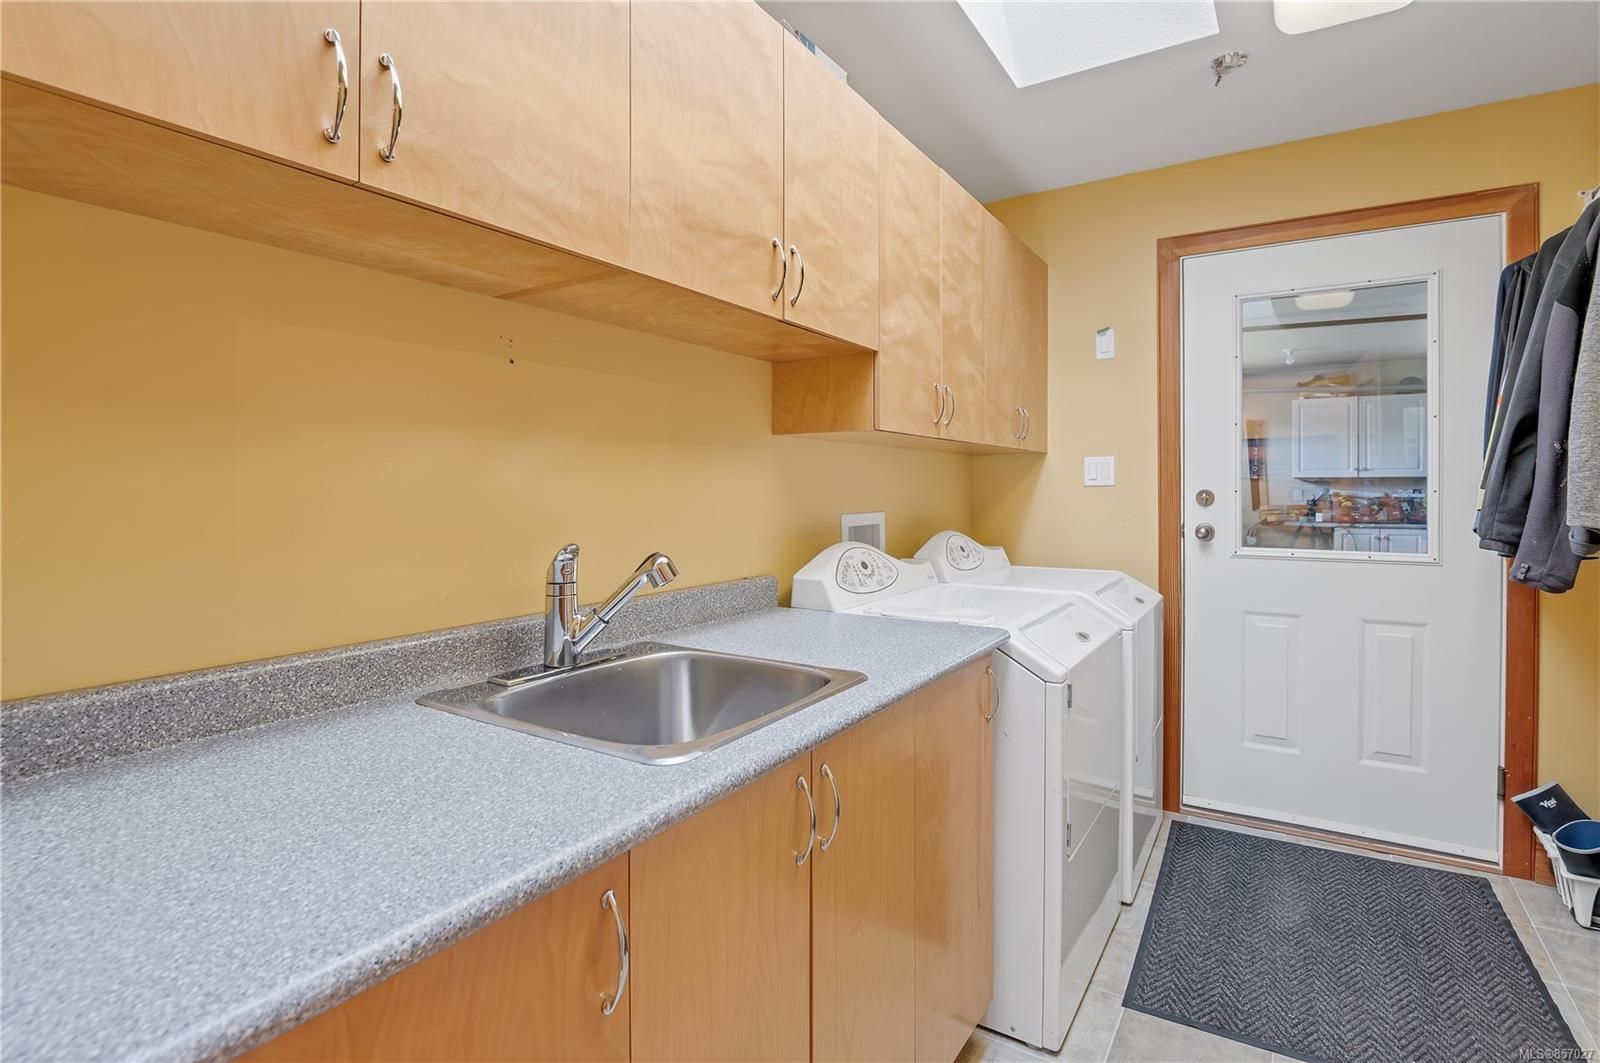 Photo 20: Photos: 253 S Alder St in : CR Campbell River South House for sale (Campbell River)  : MLS®# 857027